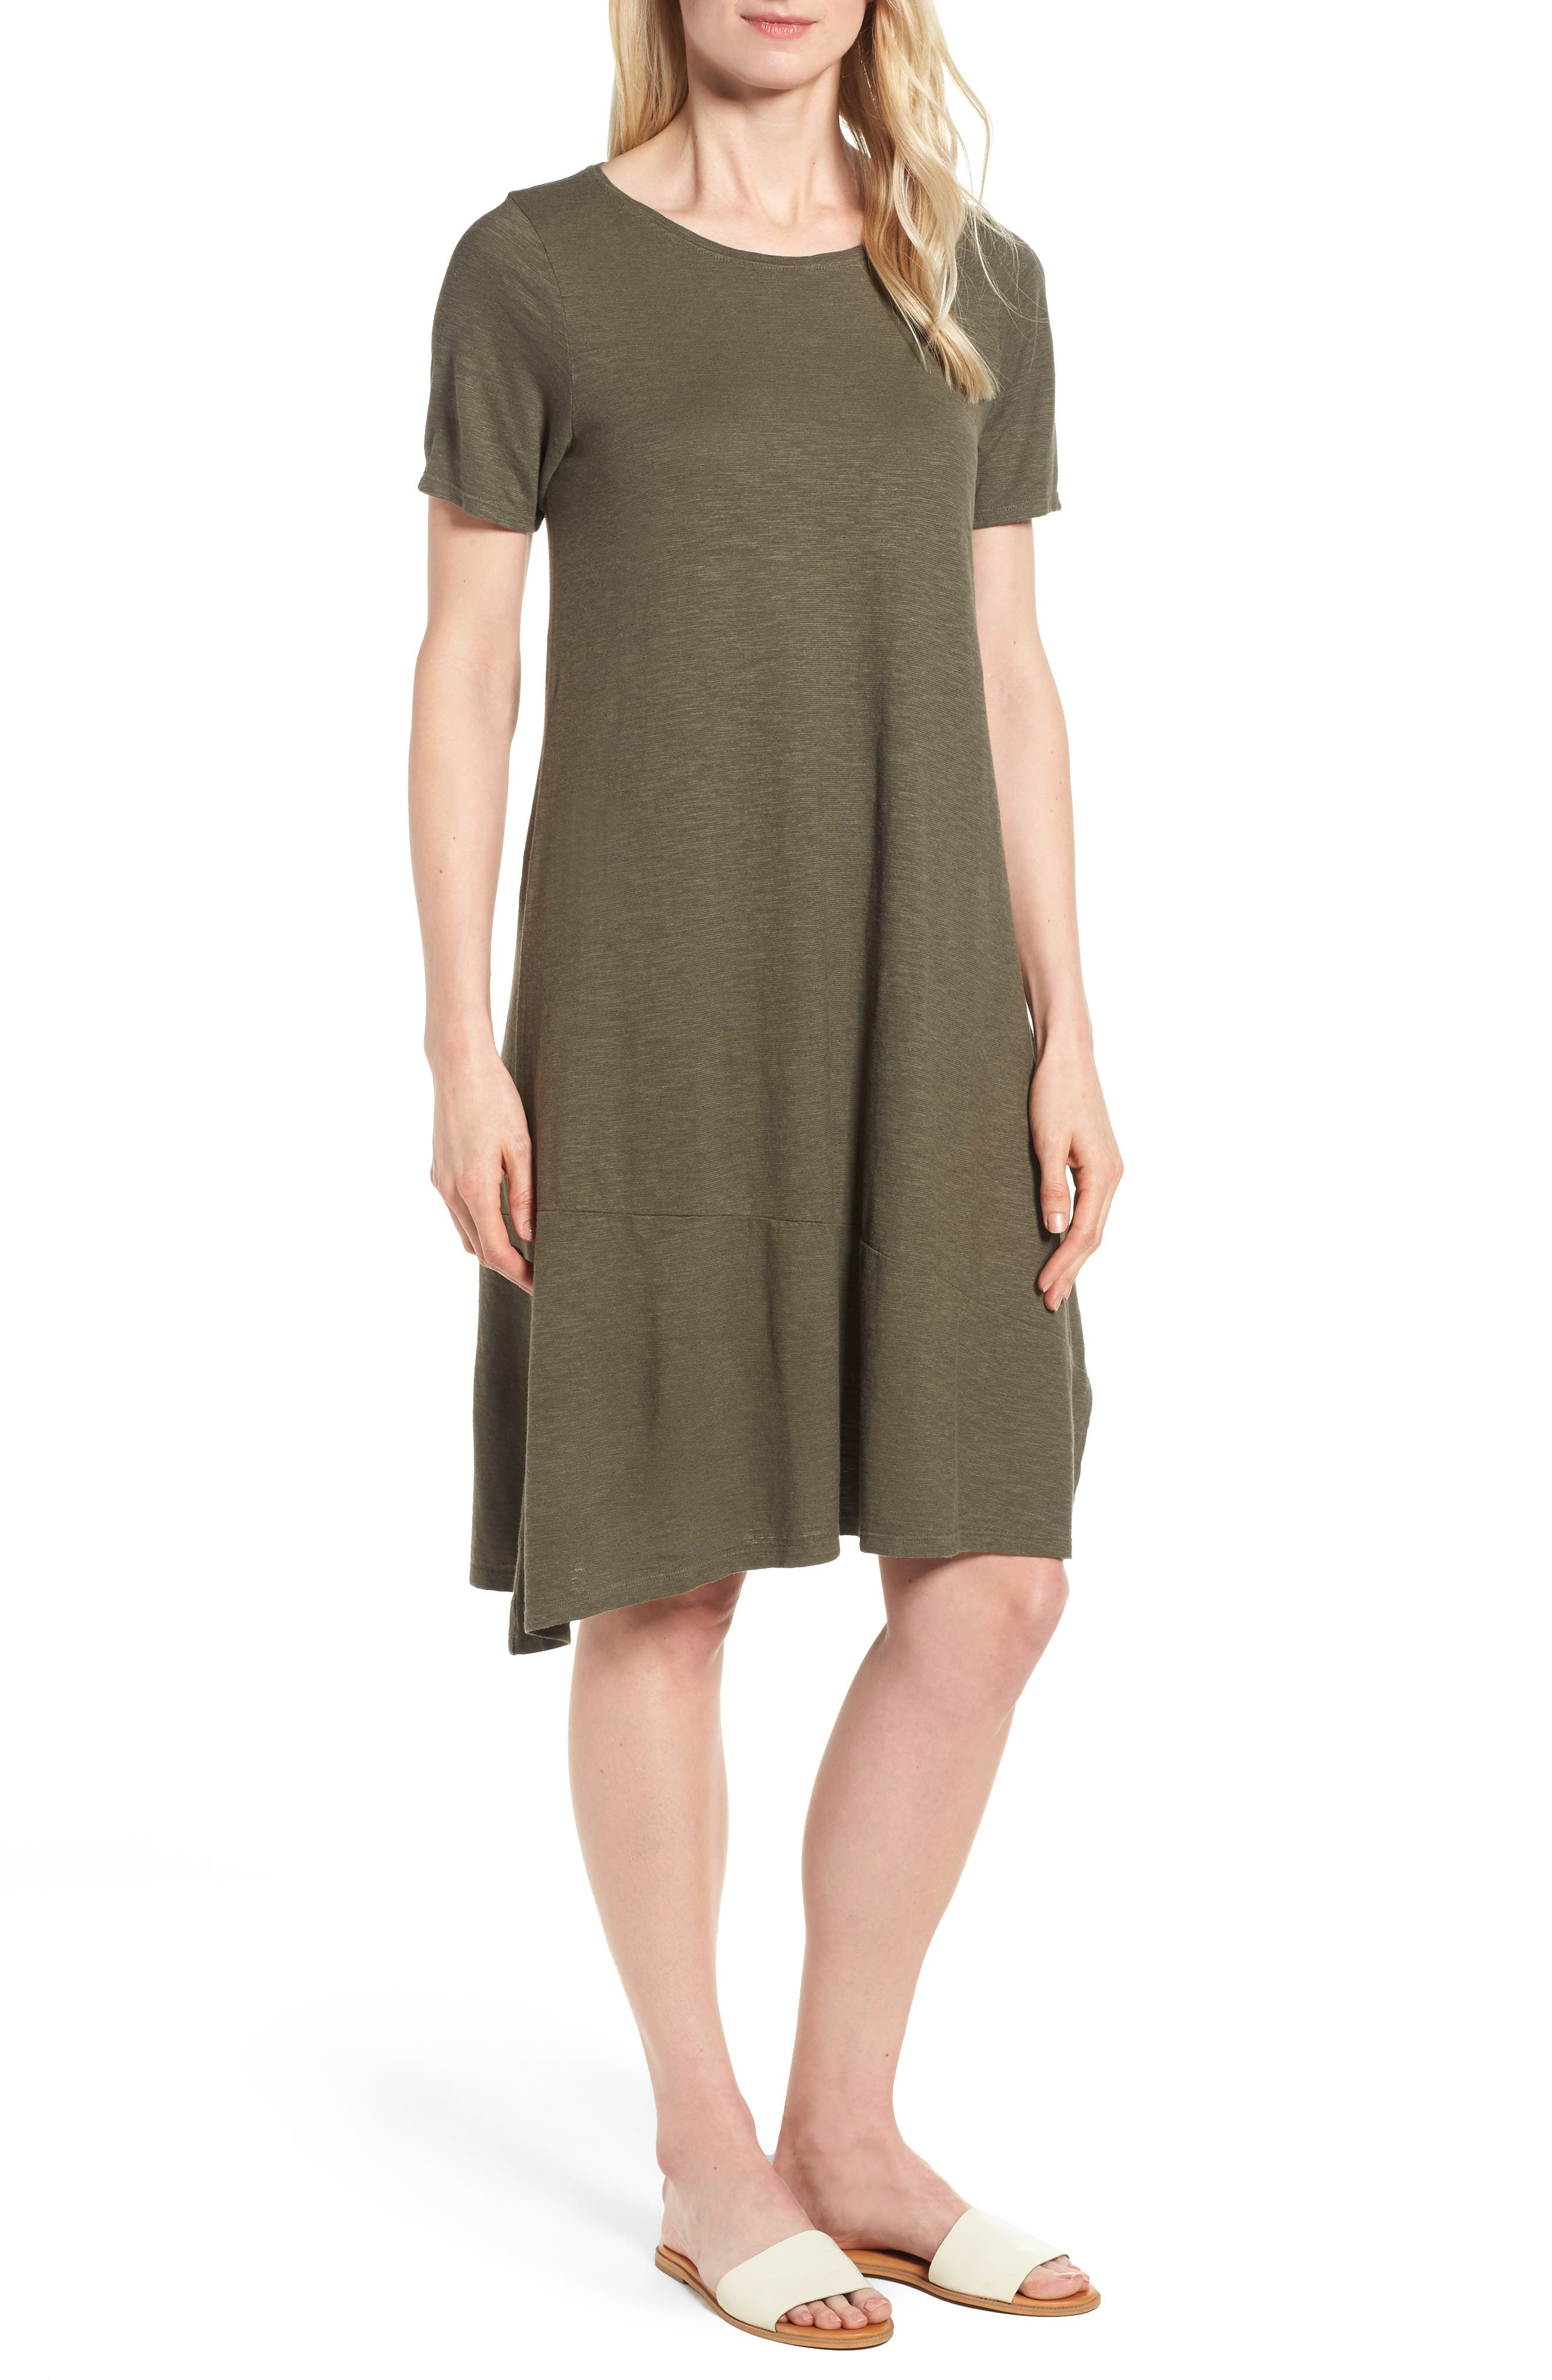 Eileen Fisher Asymmetrical Hemp Blend Shift Dress